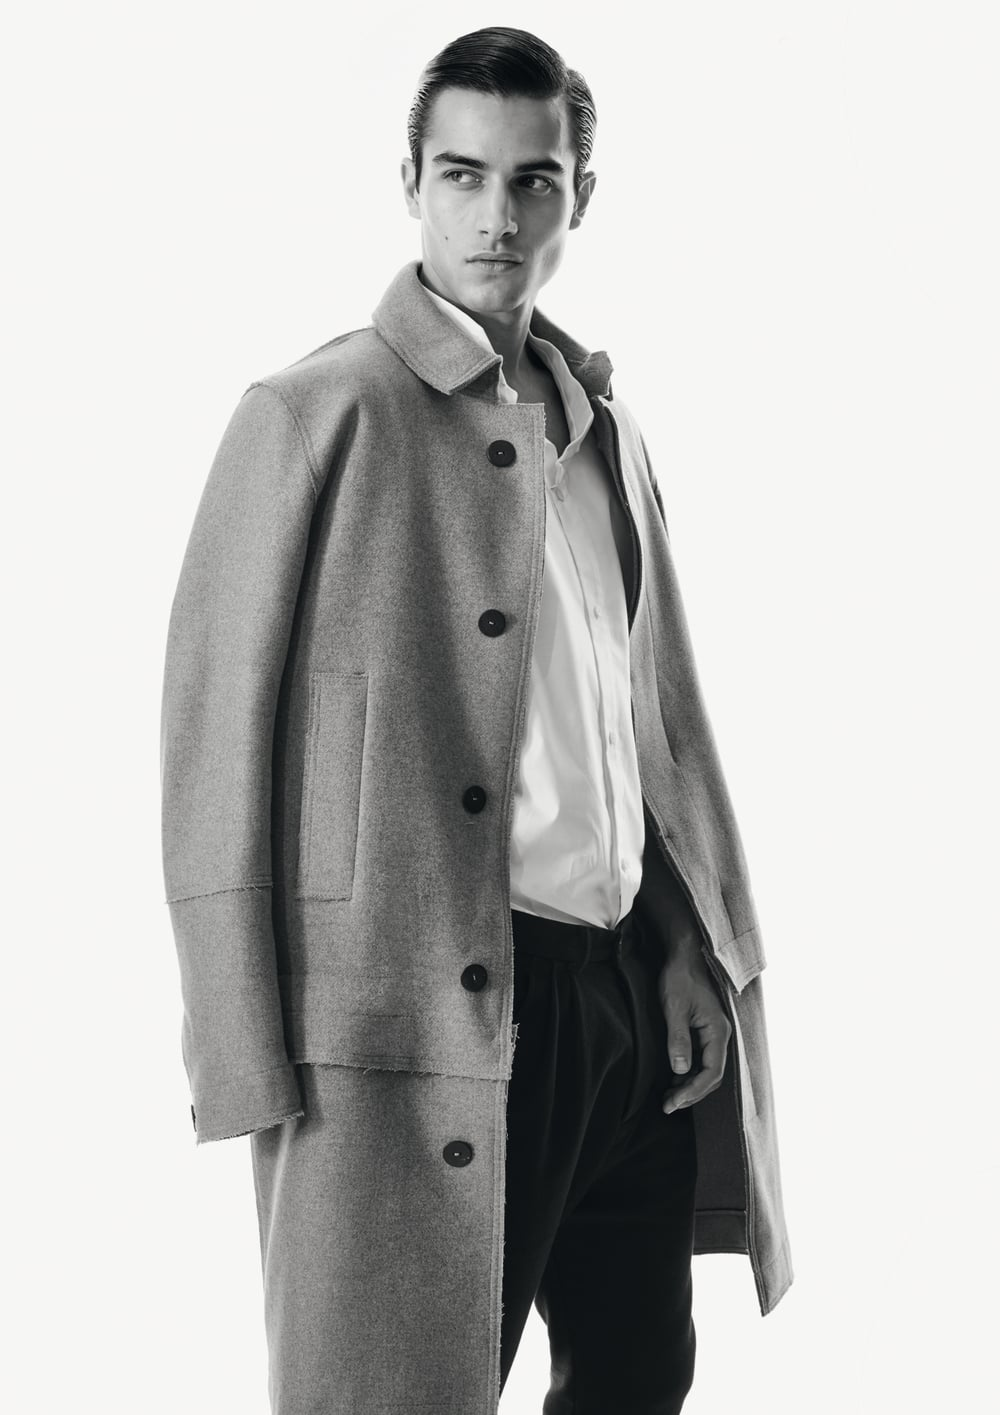 Boulezar_Lookbook_AW16_A4_men8_2.jpg